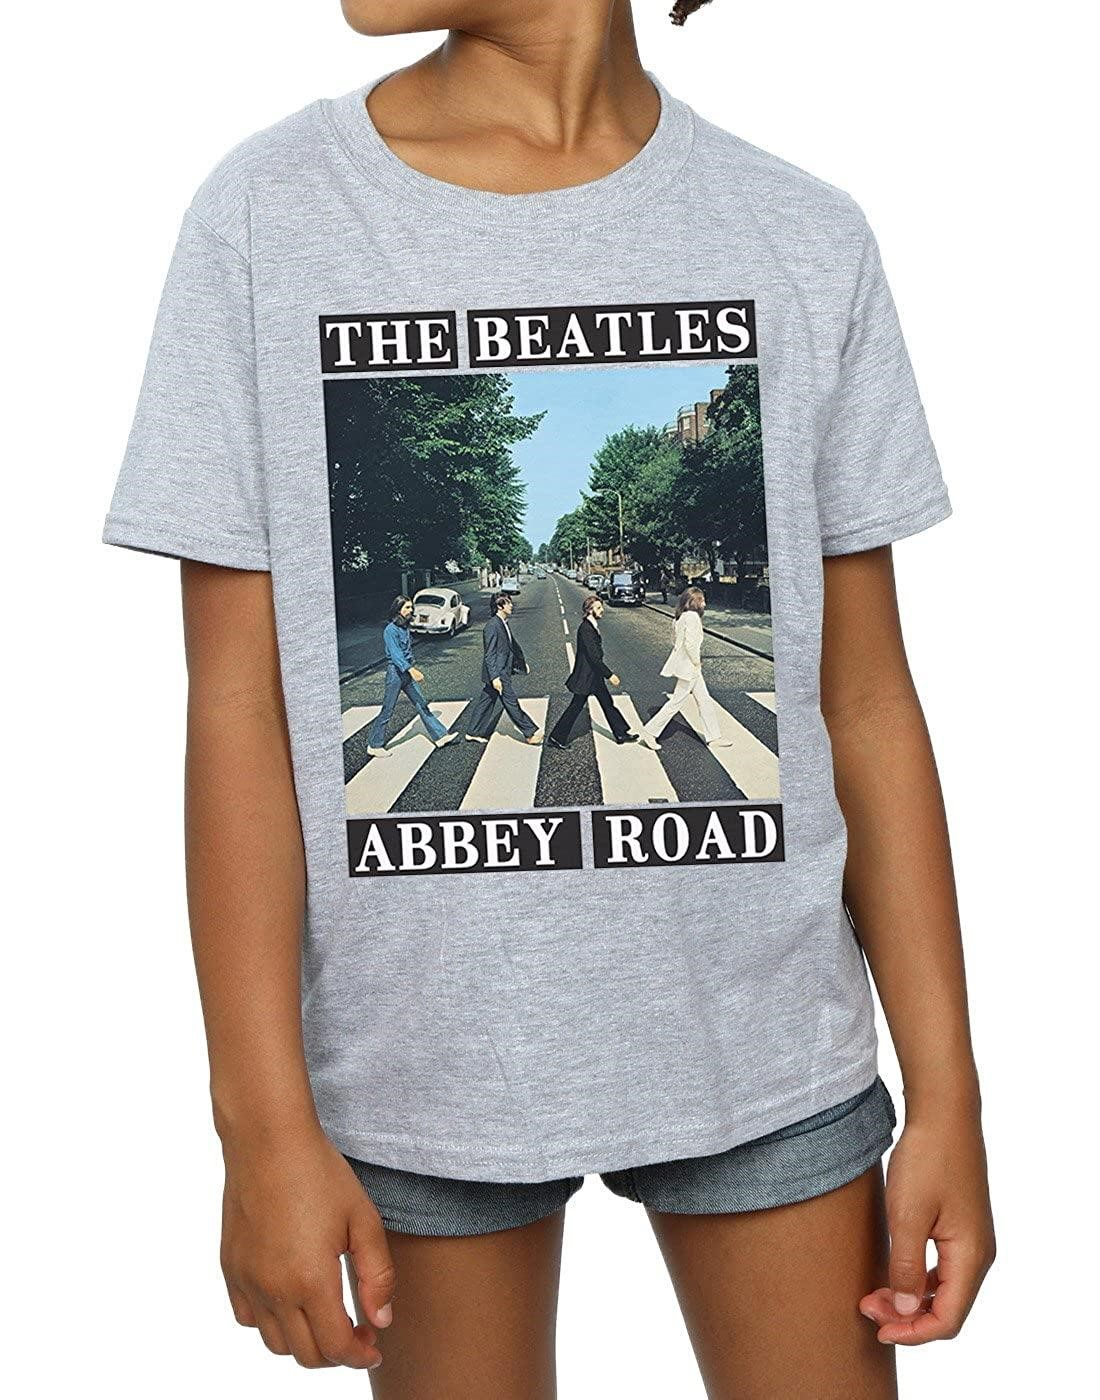 T shirt about abbey road album cover of the beatles